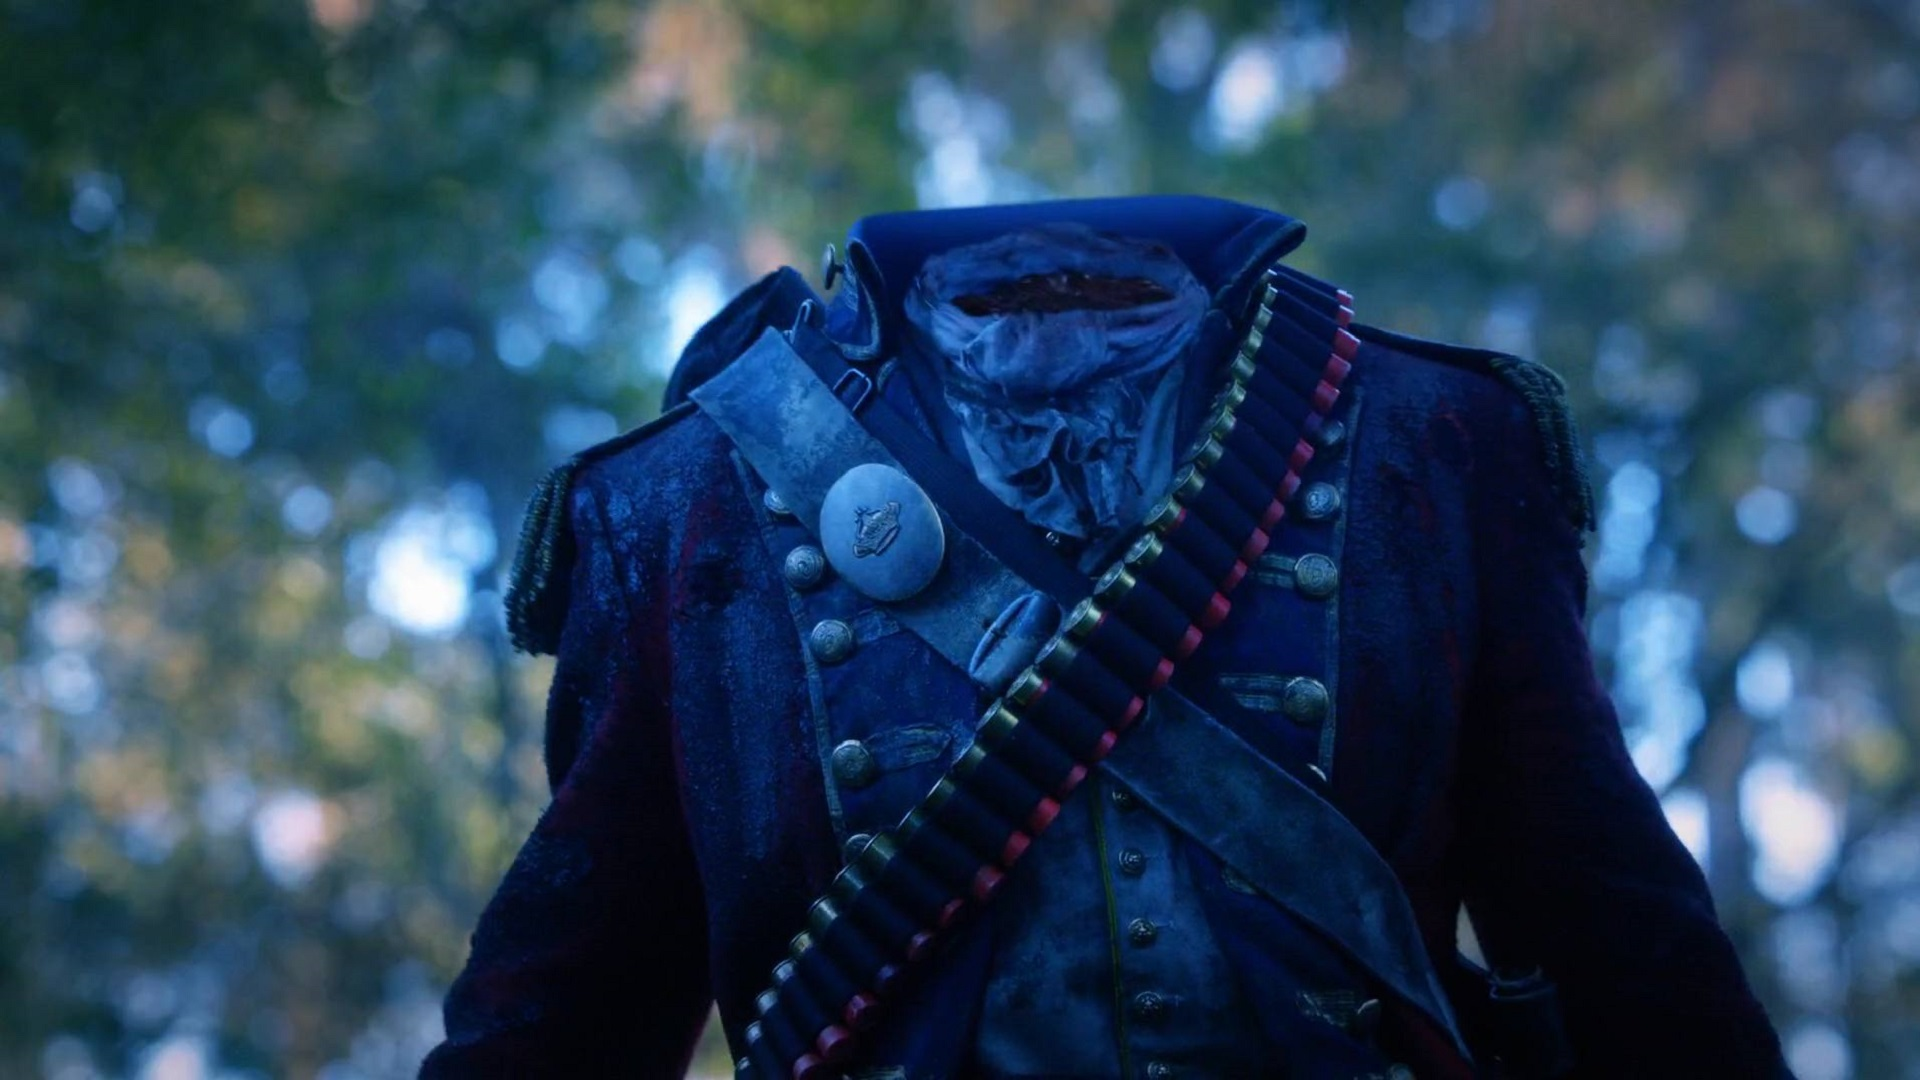 Risultati immagini per death sleepy hollow tv show